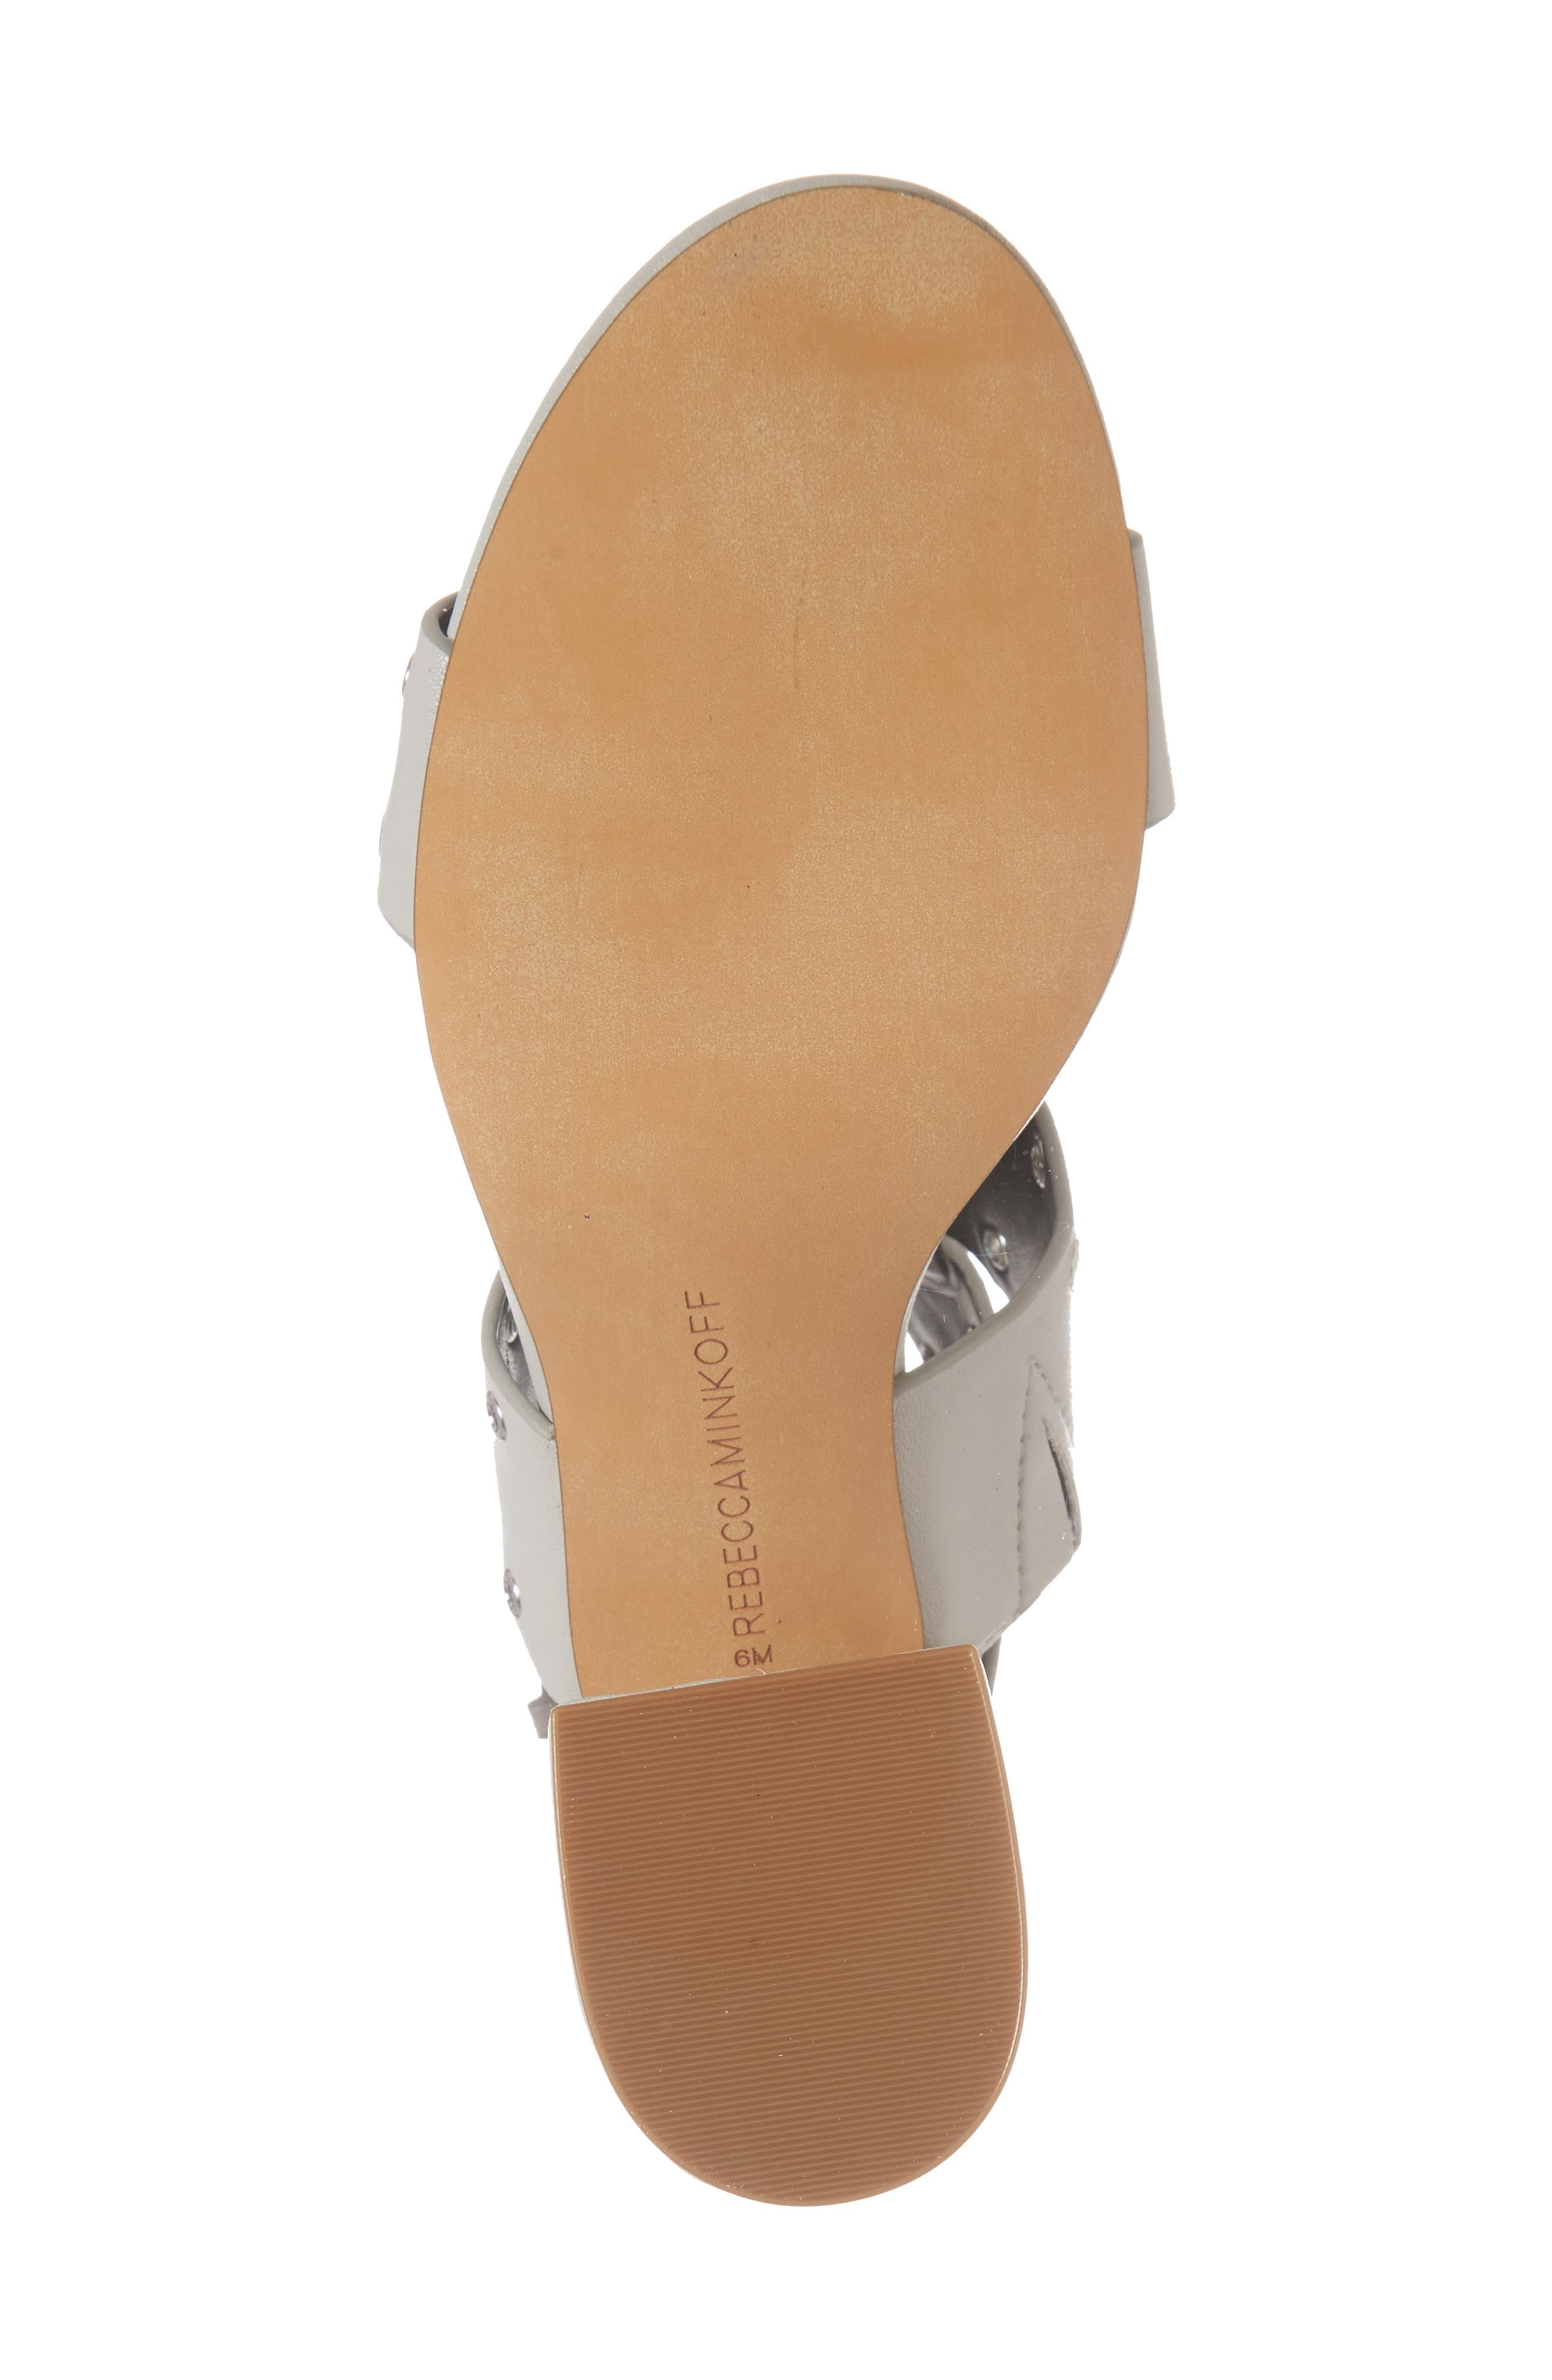 Carter Grommet Sandal,                             Alternate thumbnail 6, color,                             Putty Calf Leather